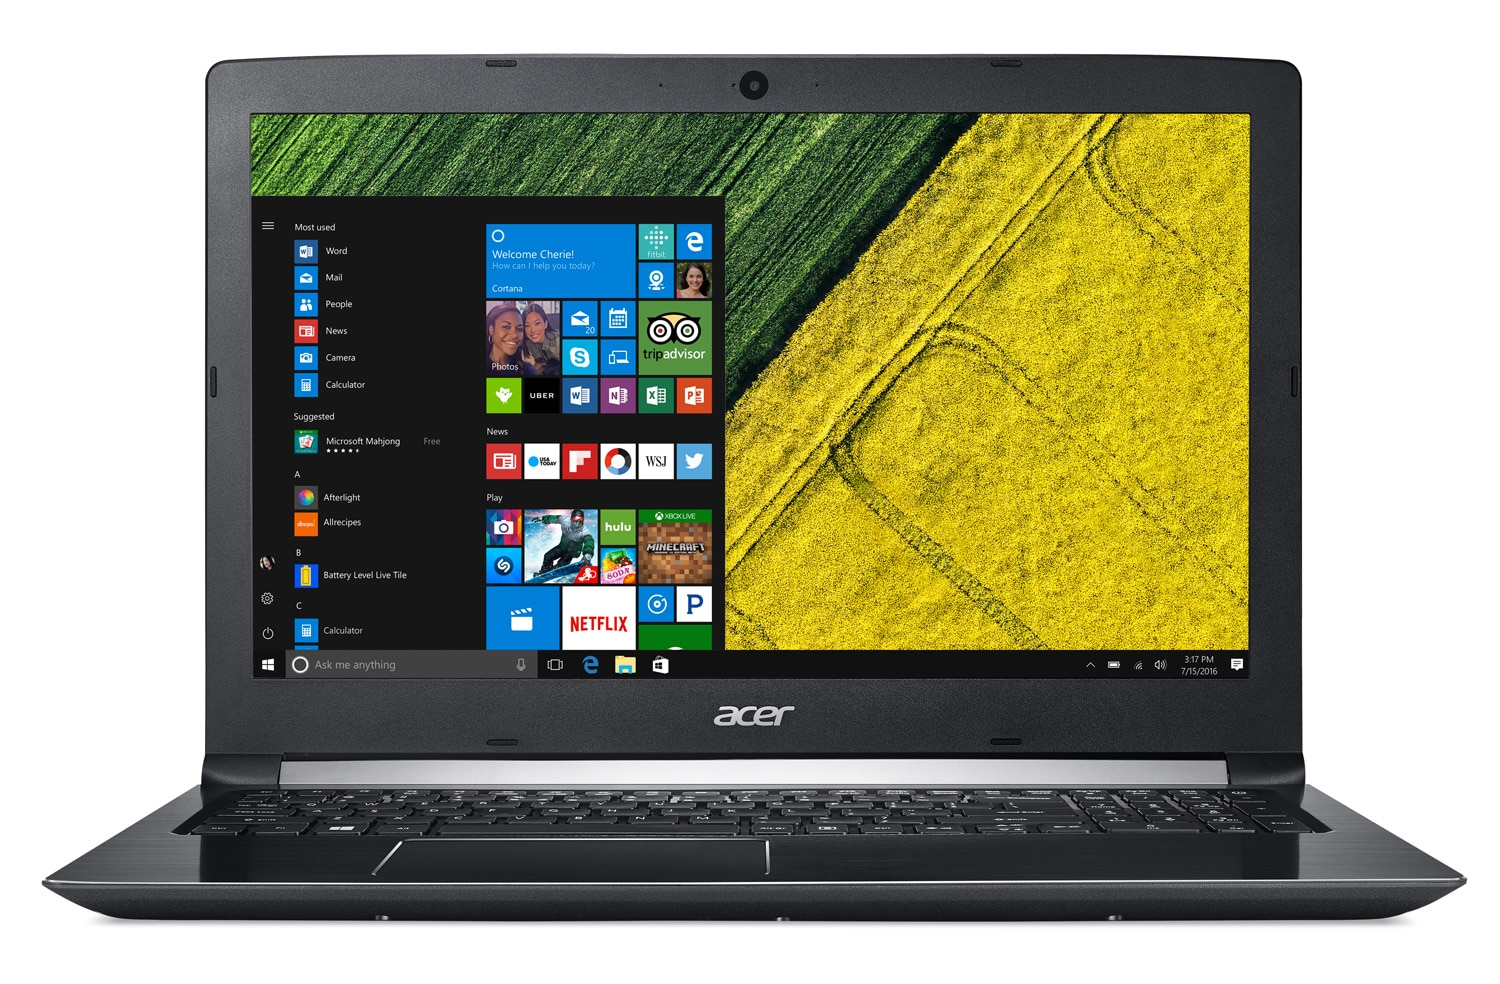 Acer Aspire A515-51-50VR à 699€, PC portable 15 pouces i5 Kaby SSD+HDD